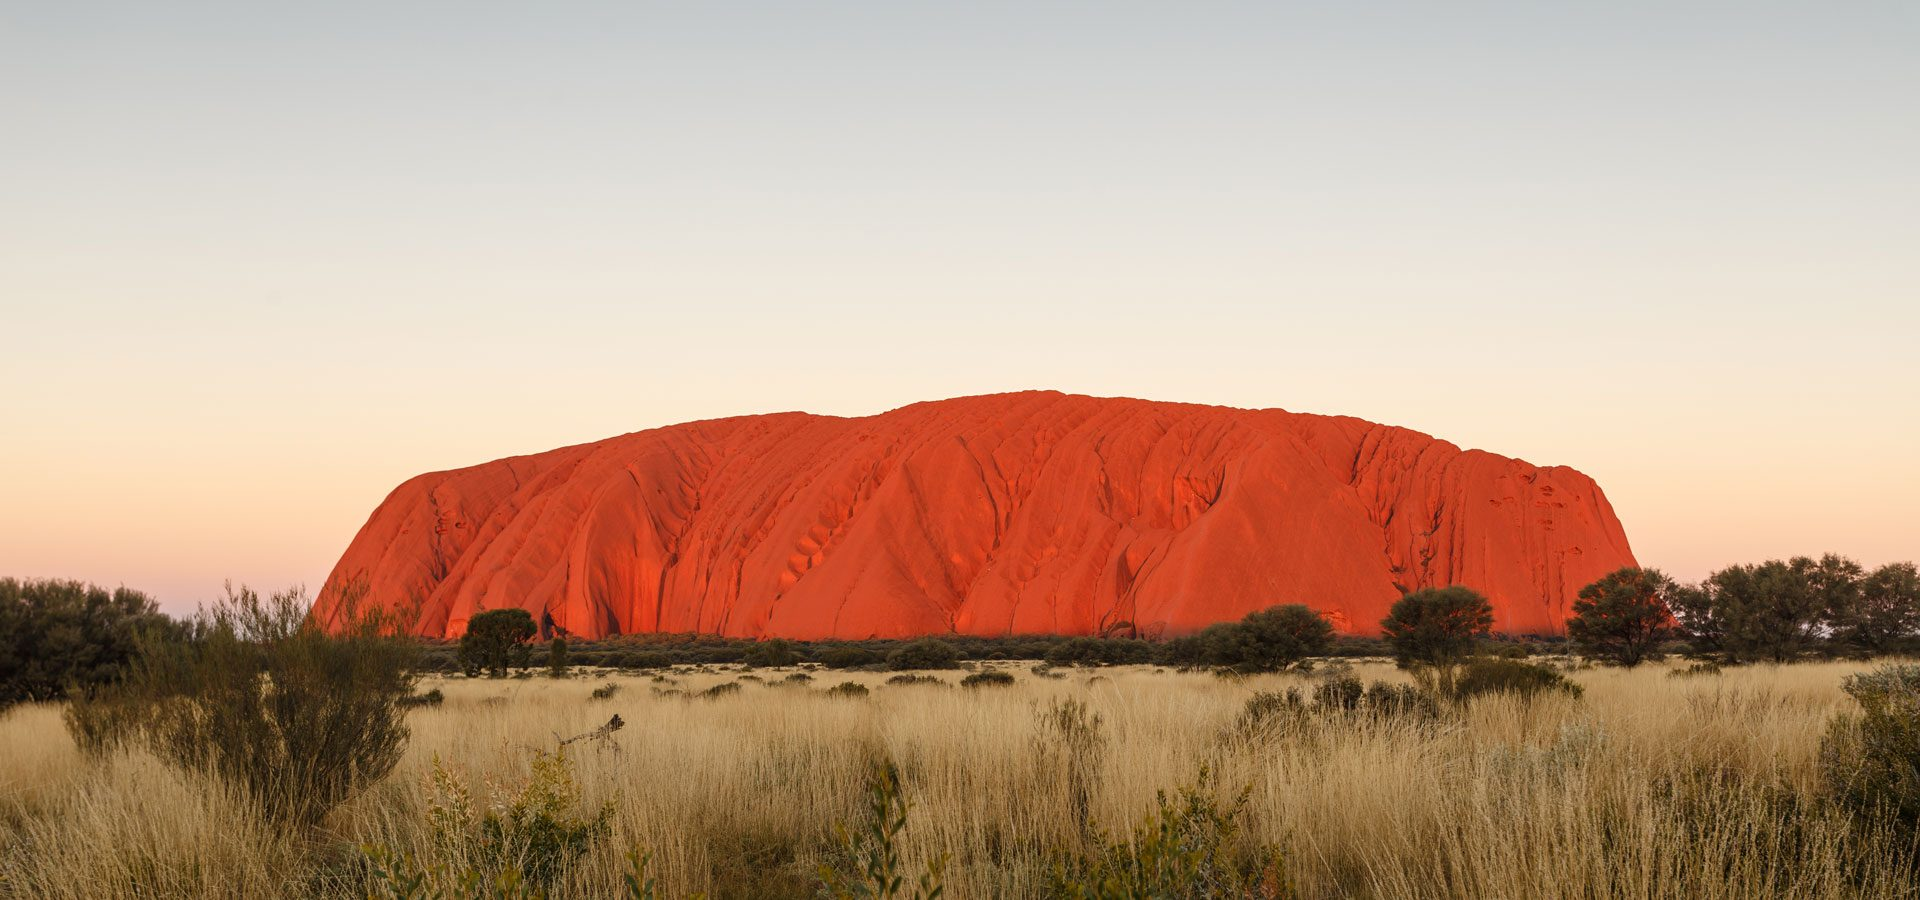 uluru-ayers-rock-sunset